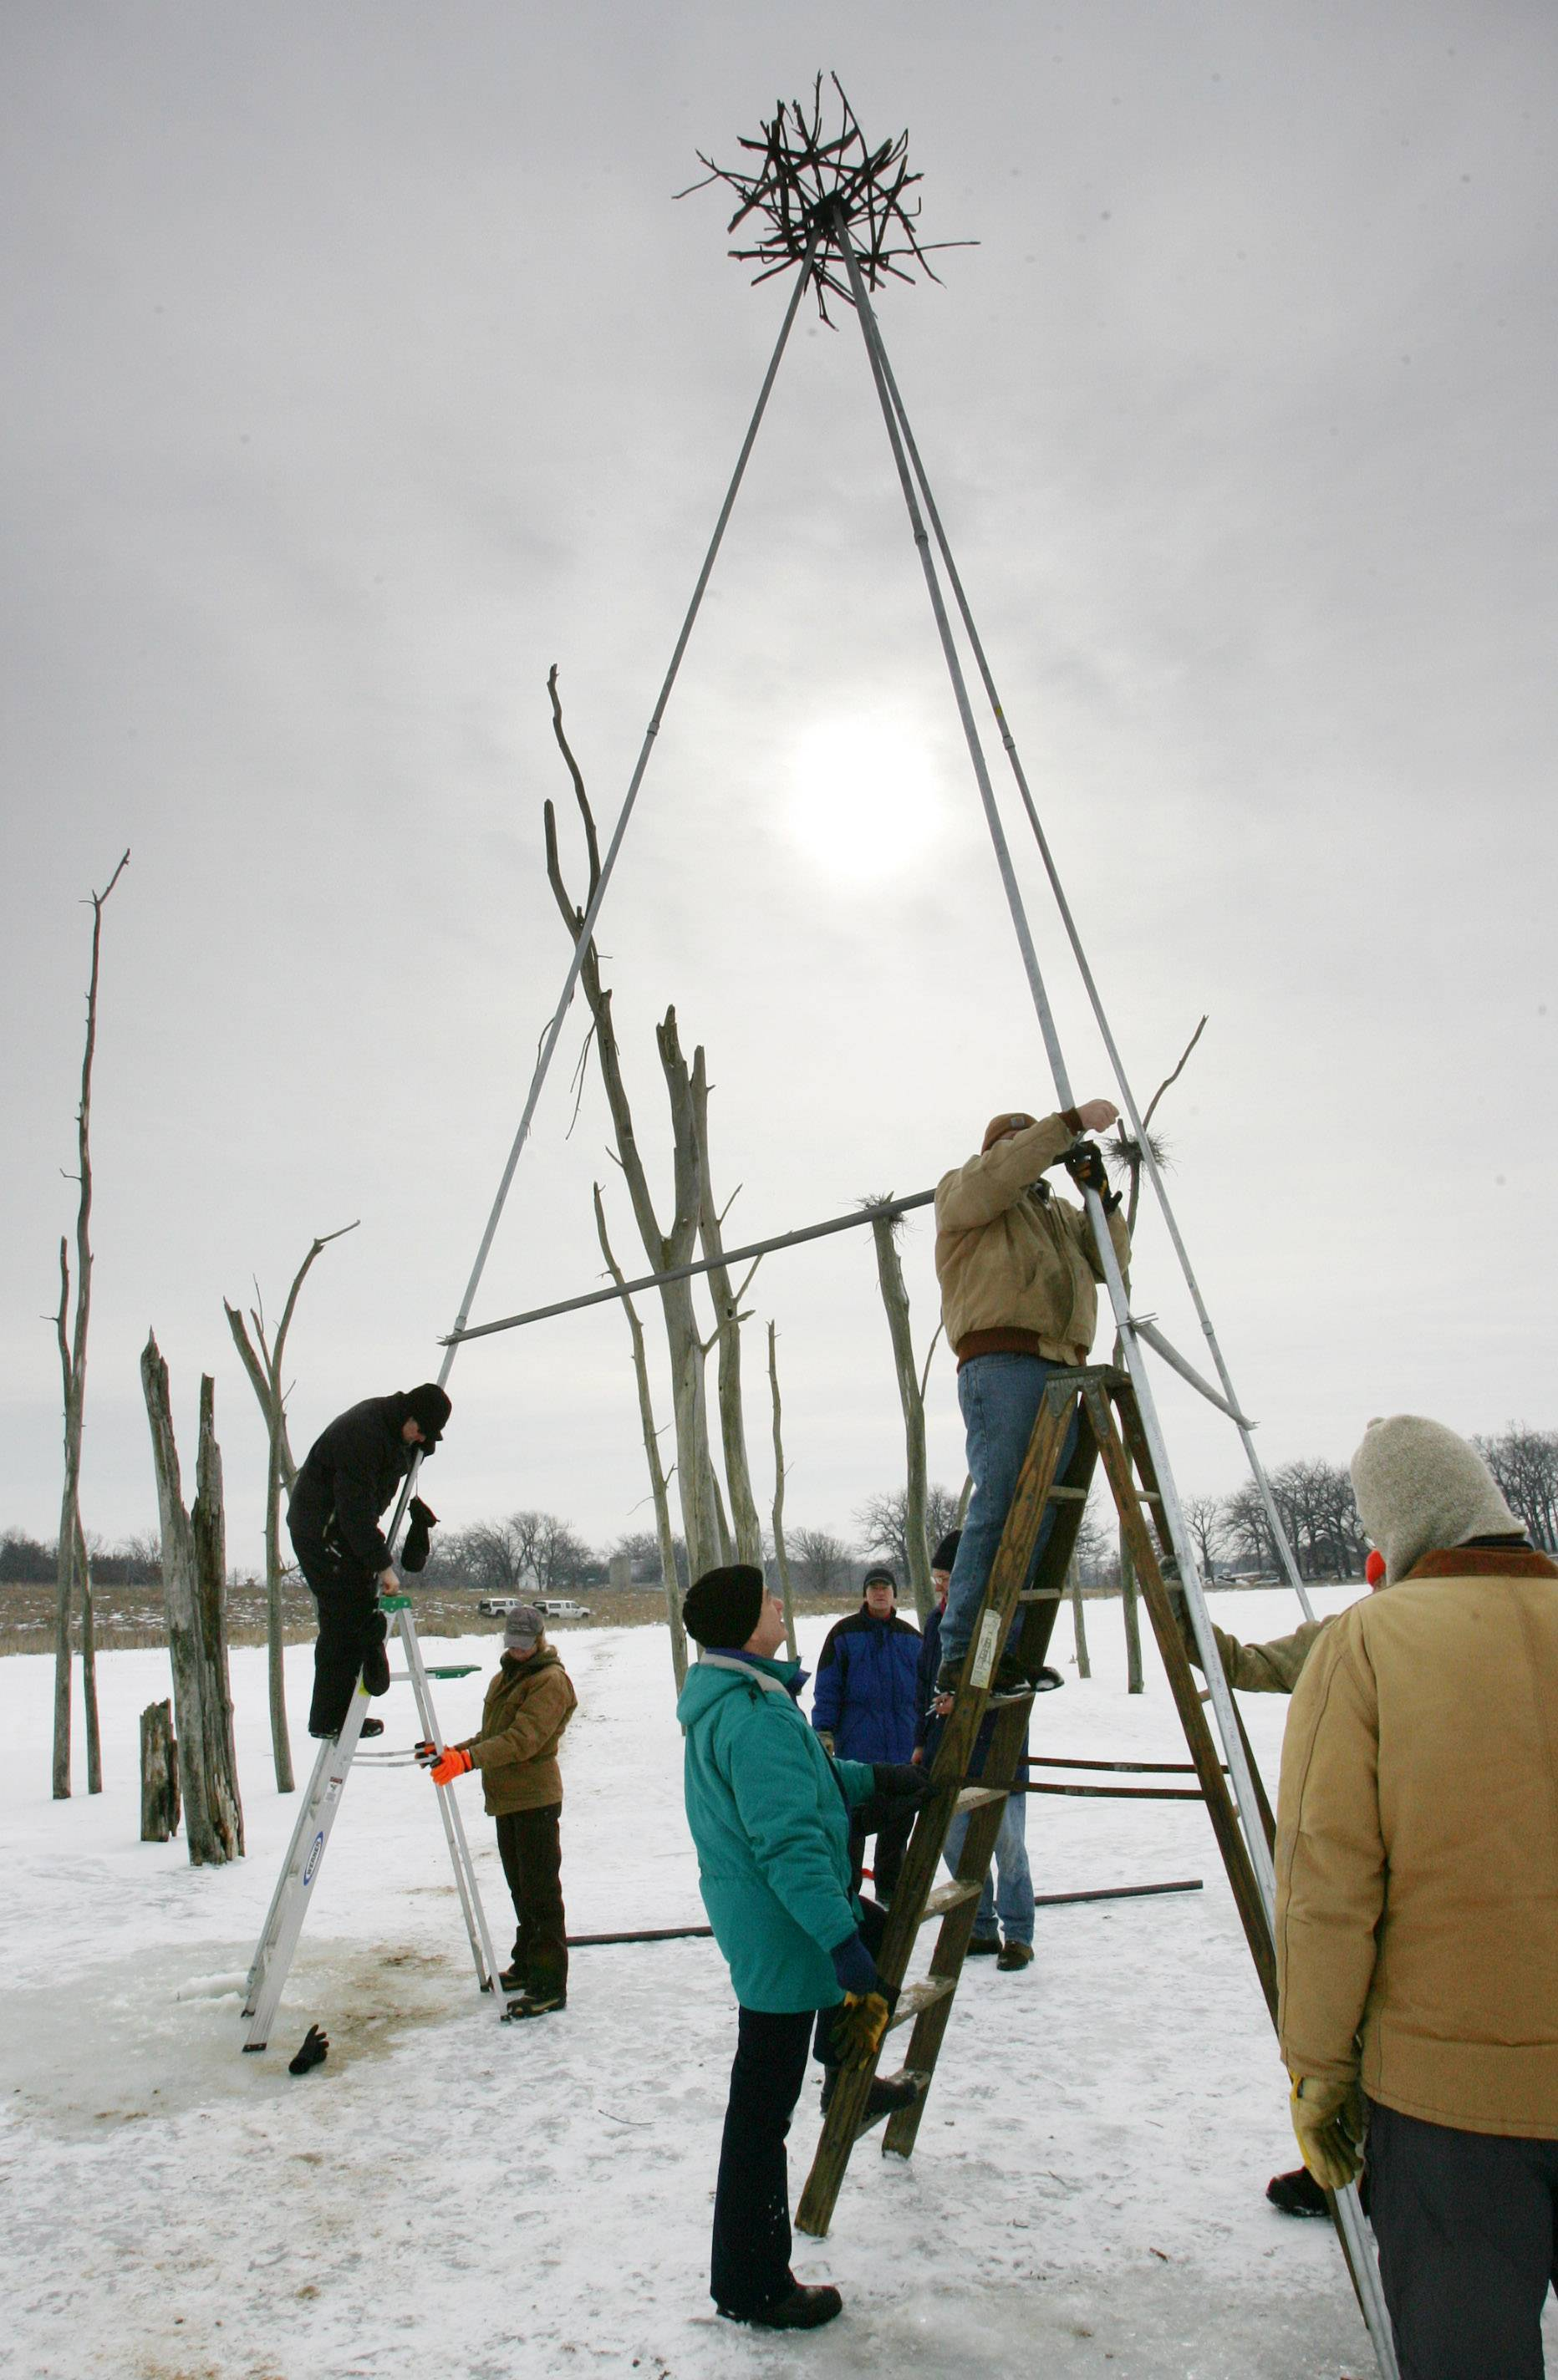 Elliot Bennett of Evanston, left, and Greg Zink of Mundelein work on a frame for the heron nesting platforms in 2010 at the Almond Marsh Forest Preserve in Libertyville Township. The 11 new platforms will help the heron population continue in the marsh.